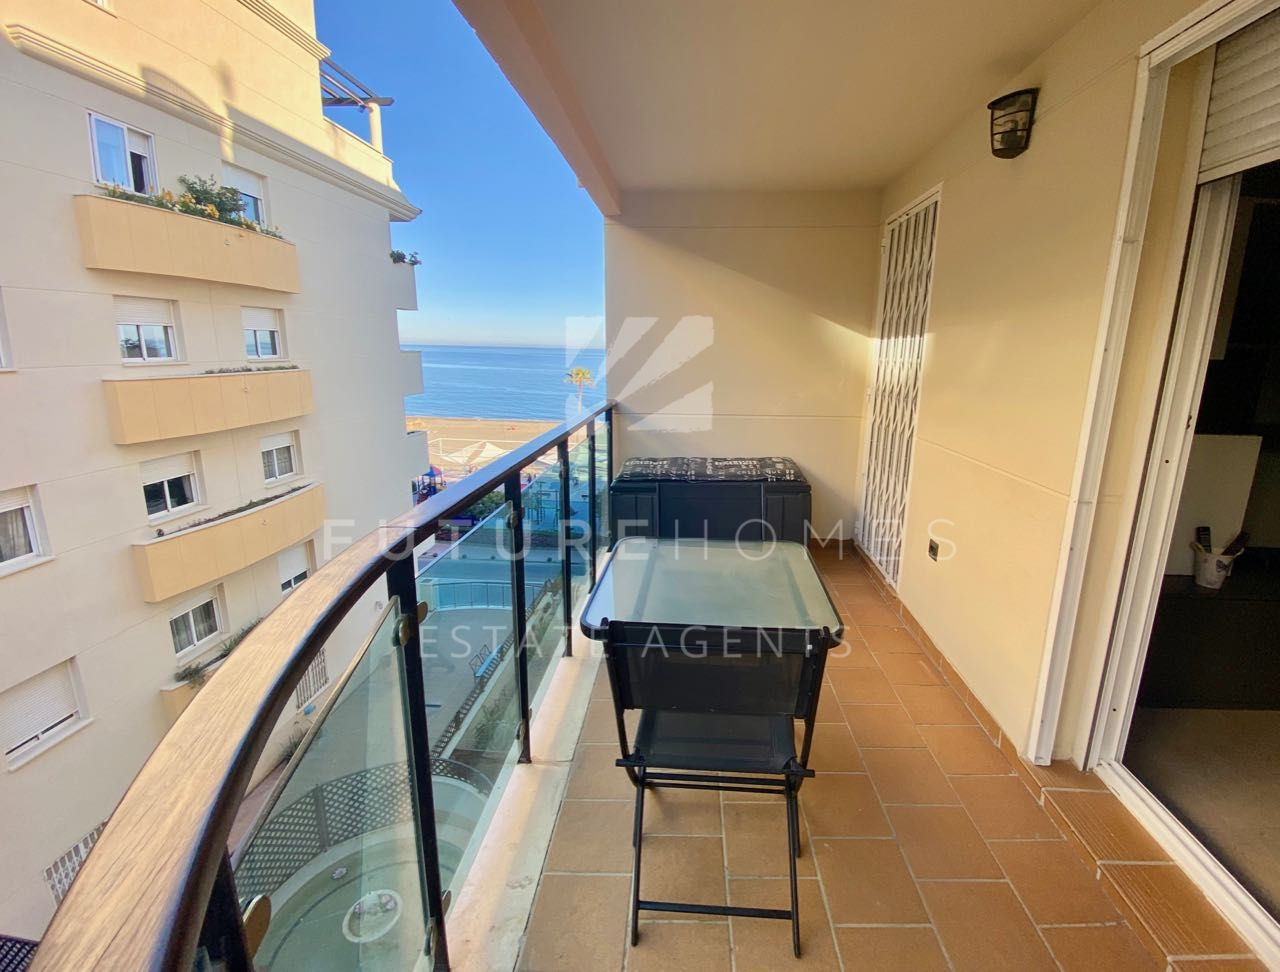 Modern apartment on Estepona sea front with sea views, garage and storeroom